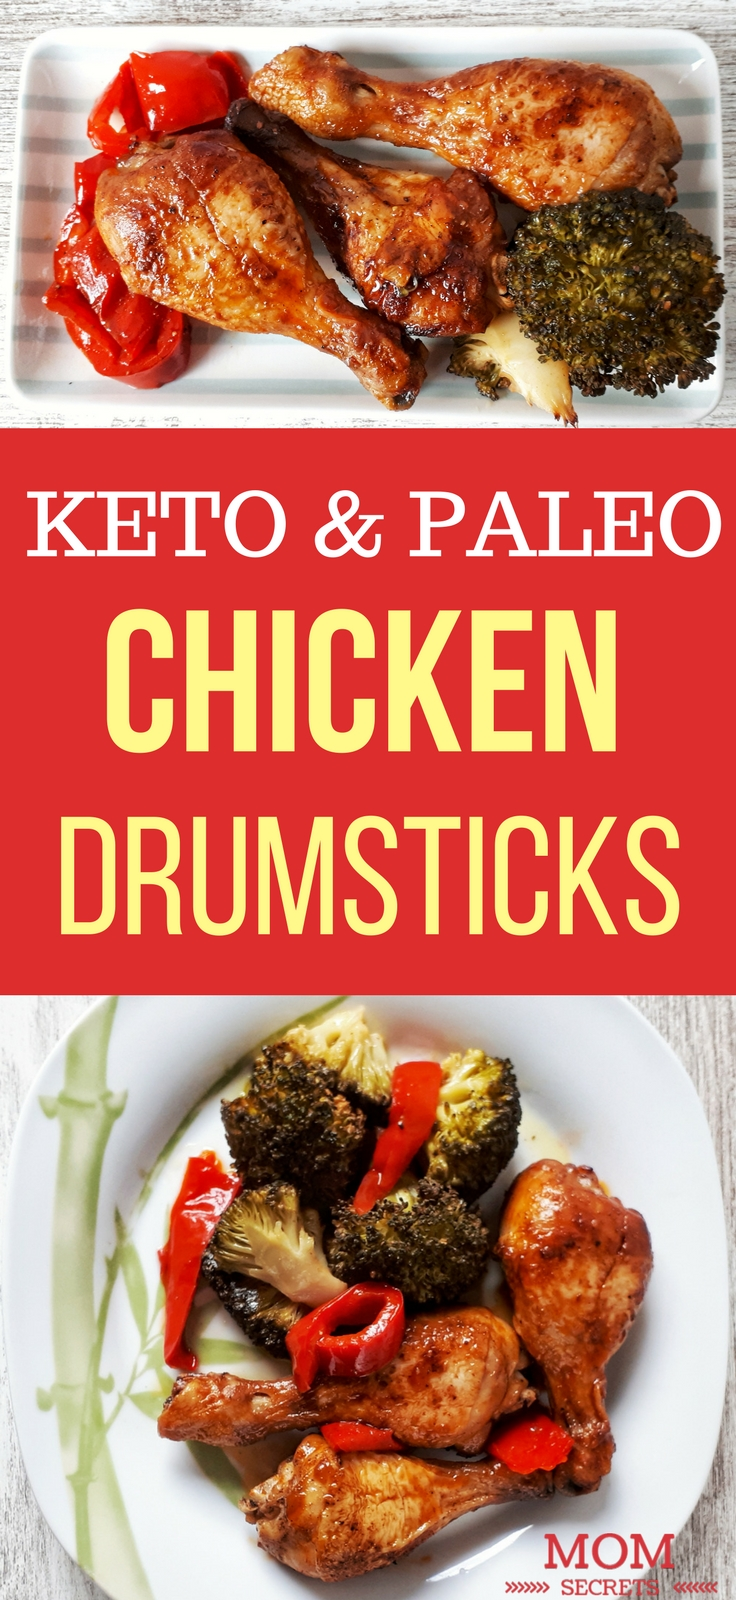 These baked chicken drumsticks are a perfect low carb, glúten-free, and paleo dinner. They are tasty, delicious and so easy to make. These chicken legs are coated in a flavorful paprika marinade, then baked to perfection!